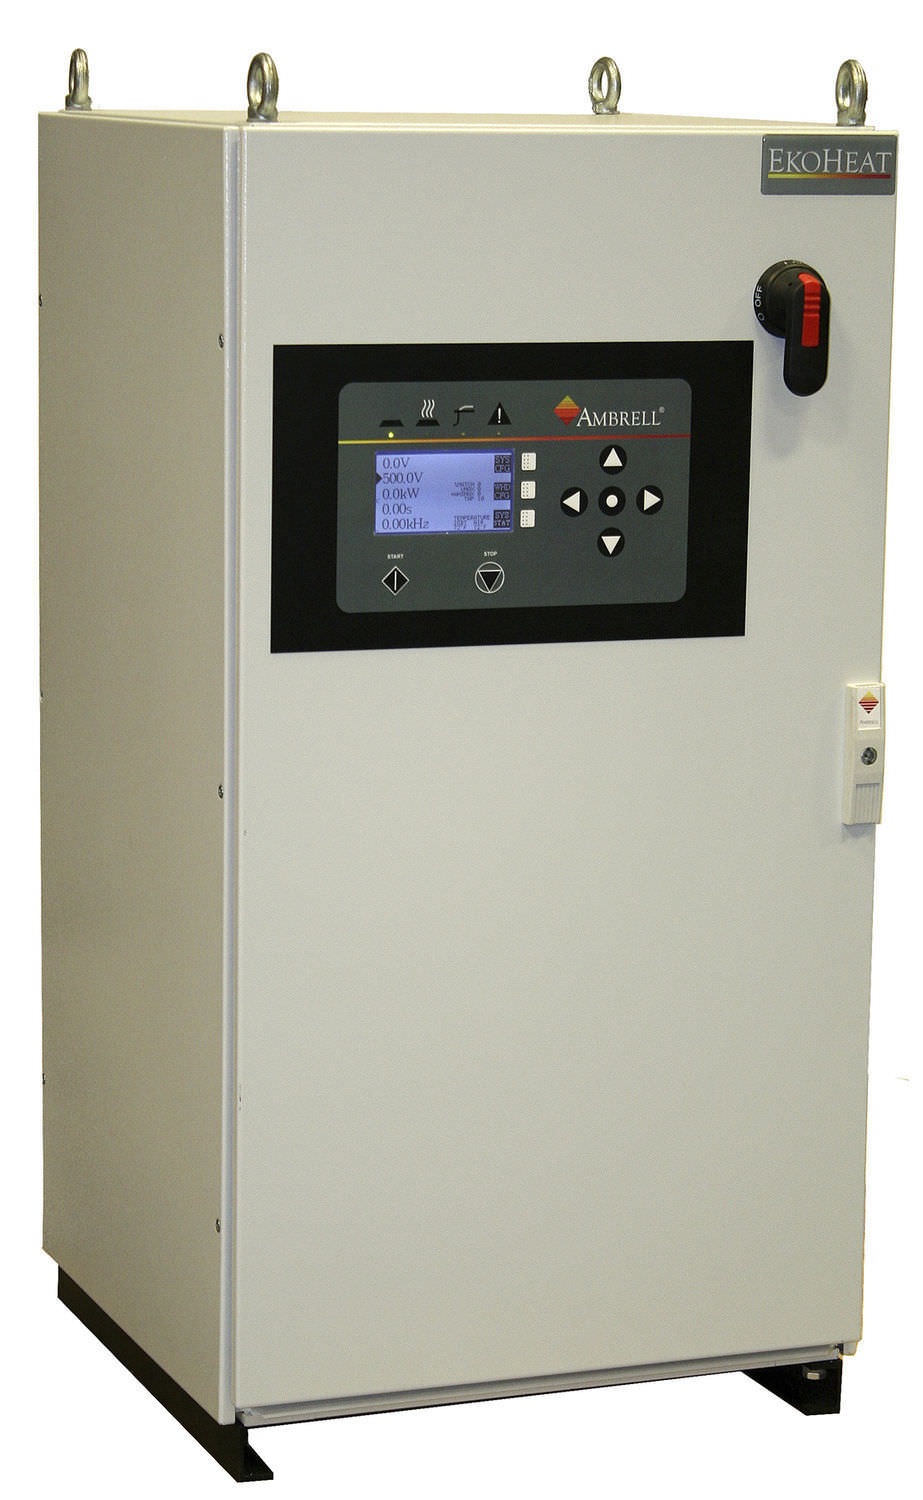 EKOHEAT 100/10 Heat treatment induction heater 100 kW, 5-15 kHz